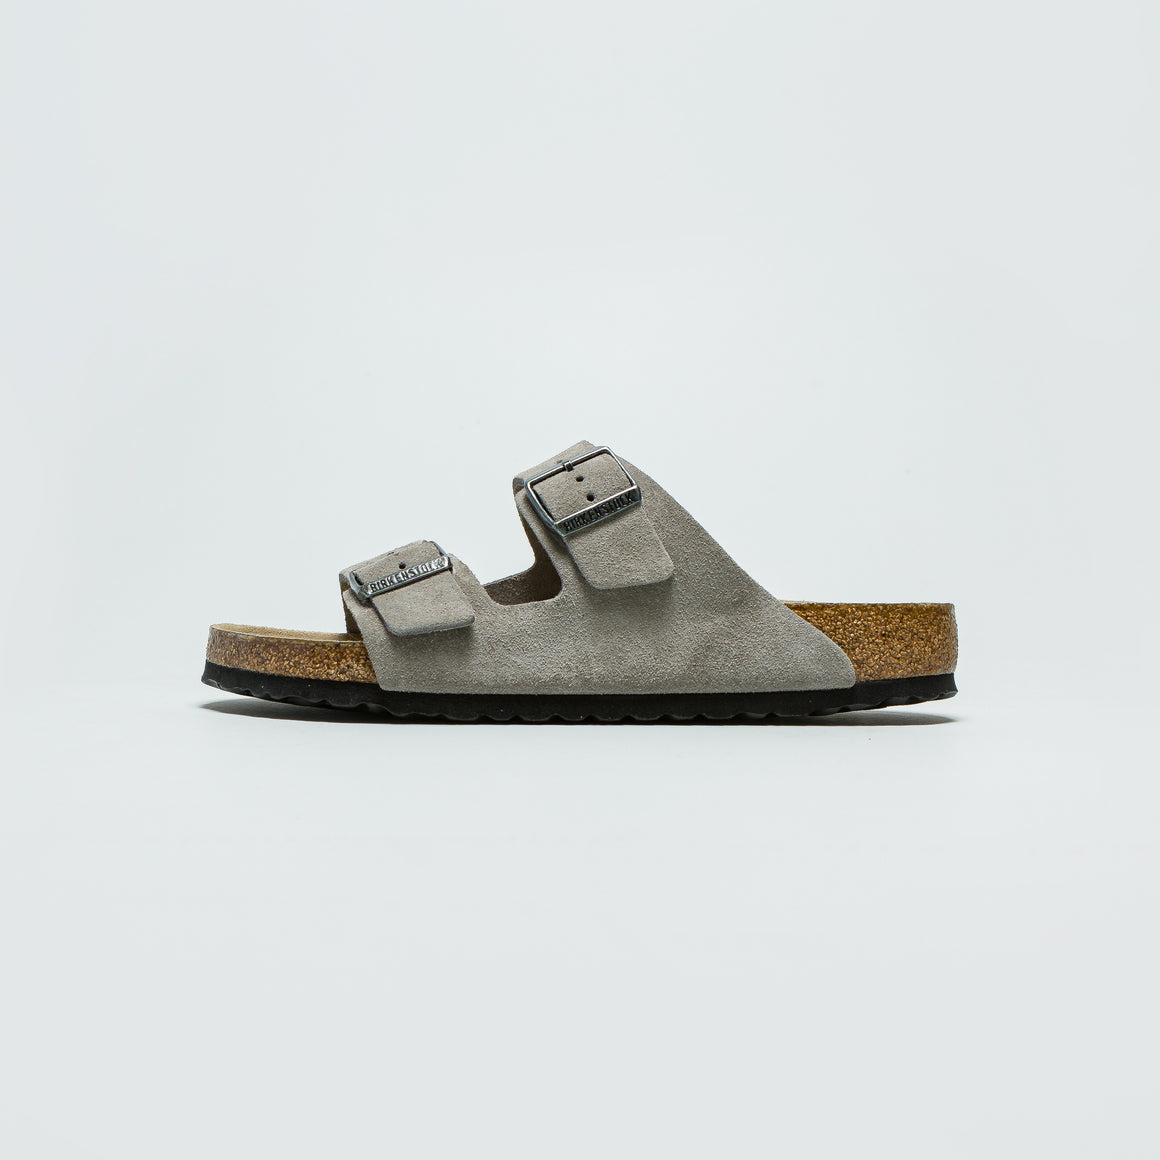 Birkenstock - Arizona SFB - Stone Coin Suede Leather - Up There